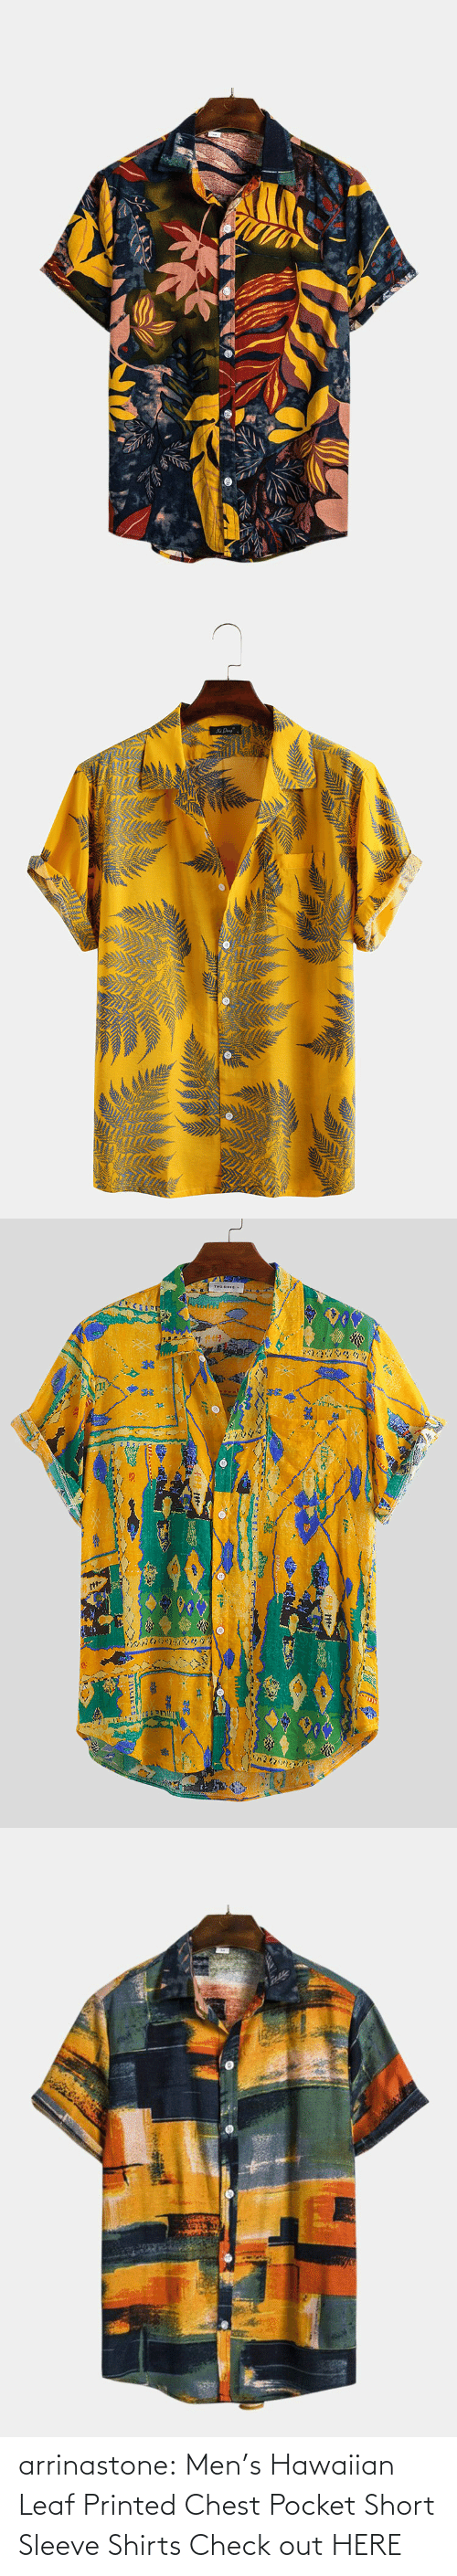 Chest: arrinastone: Men's Hawaiian Leaf Printed Chest Pocket Short Sleeve Shirts  Check out HERE